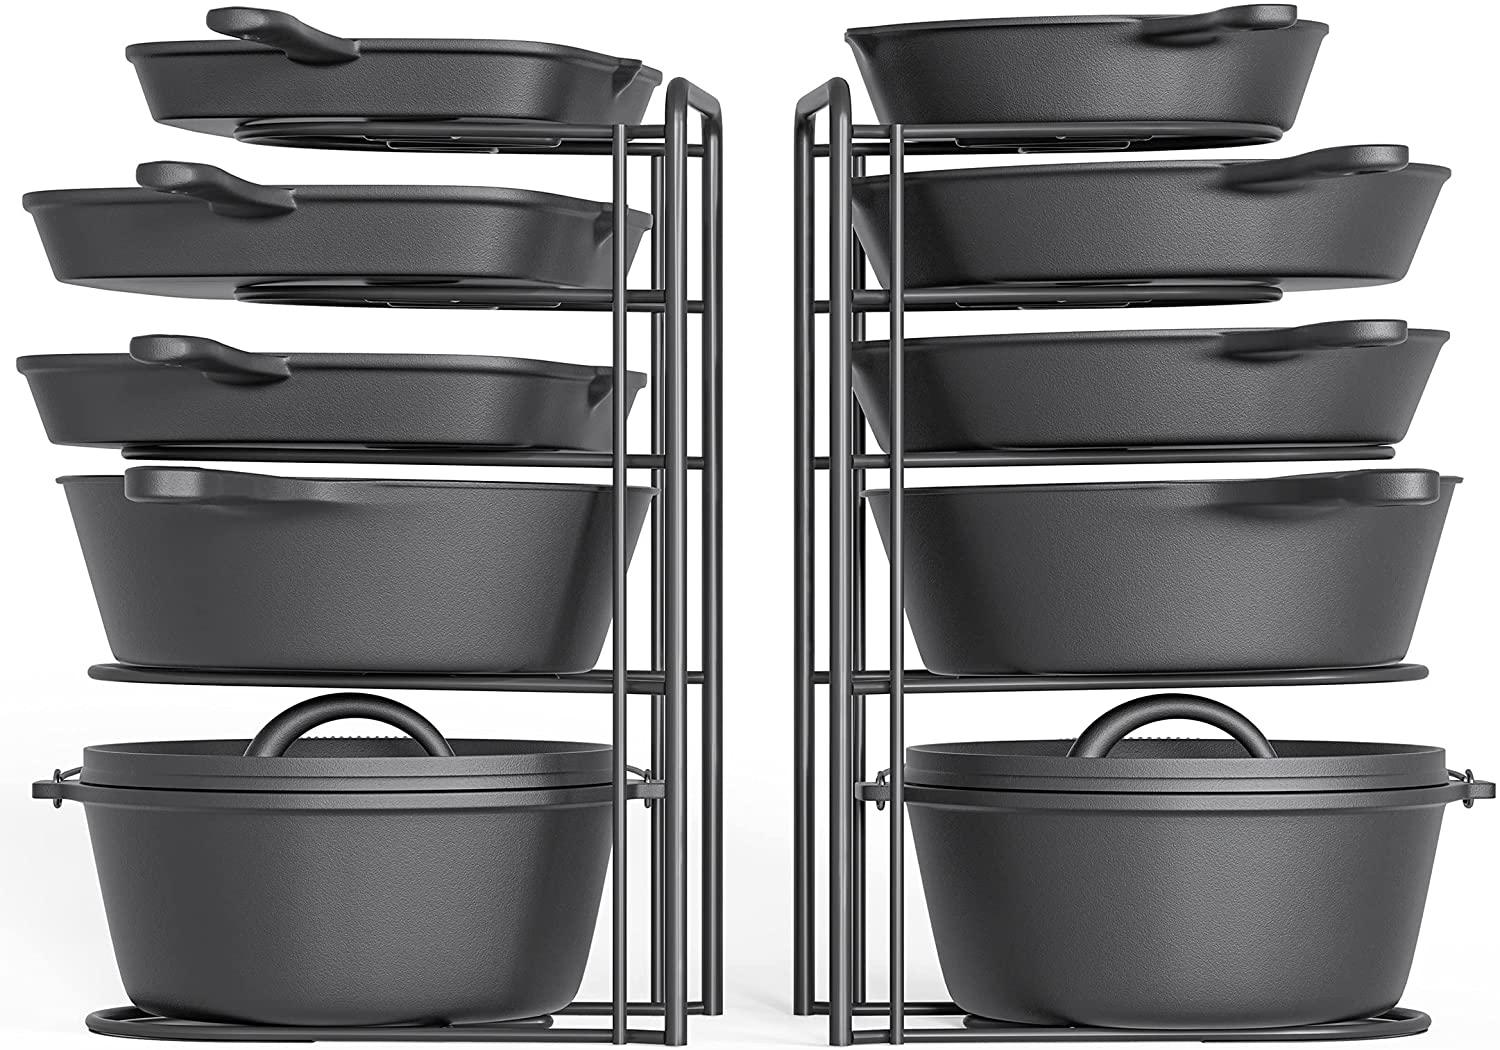 2 Pack - Heavy Duty Pot Rack Organizer, 5 Tier Pan Rack Holder, Holds Cast Iron Skillets, Dutch Oven, Frying Pan, Griddles - No Assembly Required, 15.9'' Height